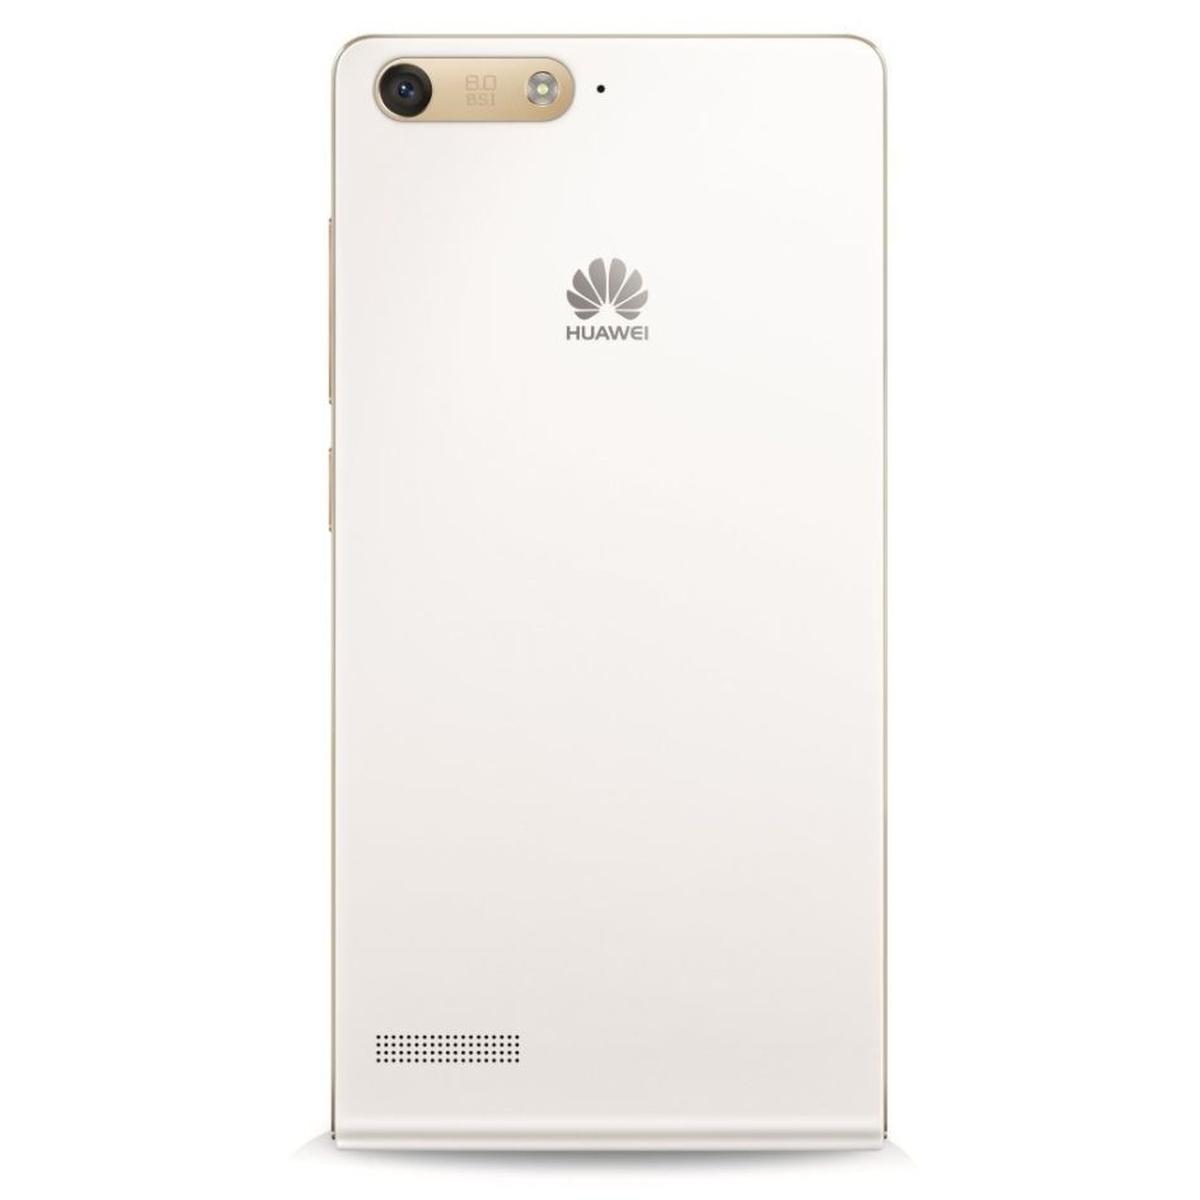 Huawei P7 mini 8GB LTE Android Smartphone #gut